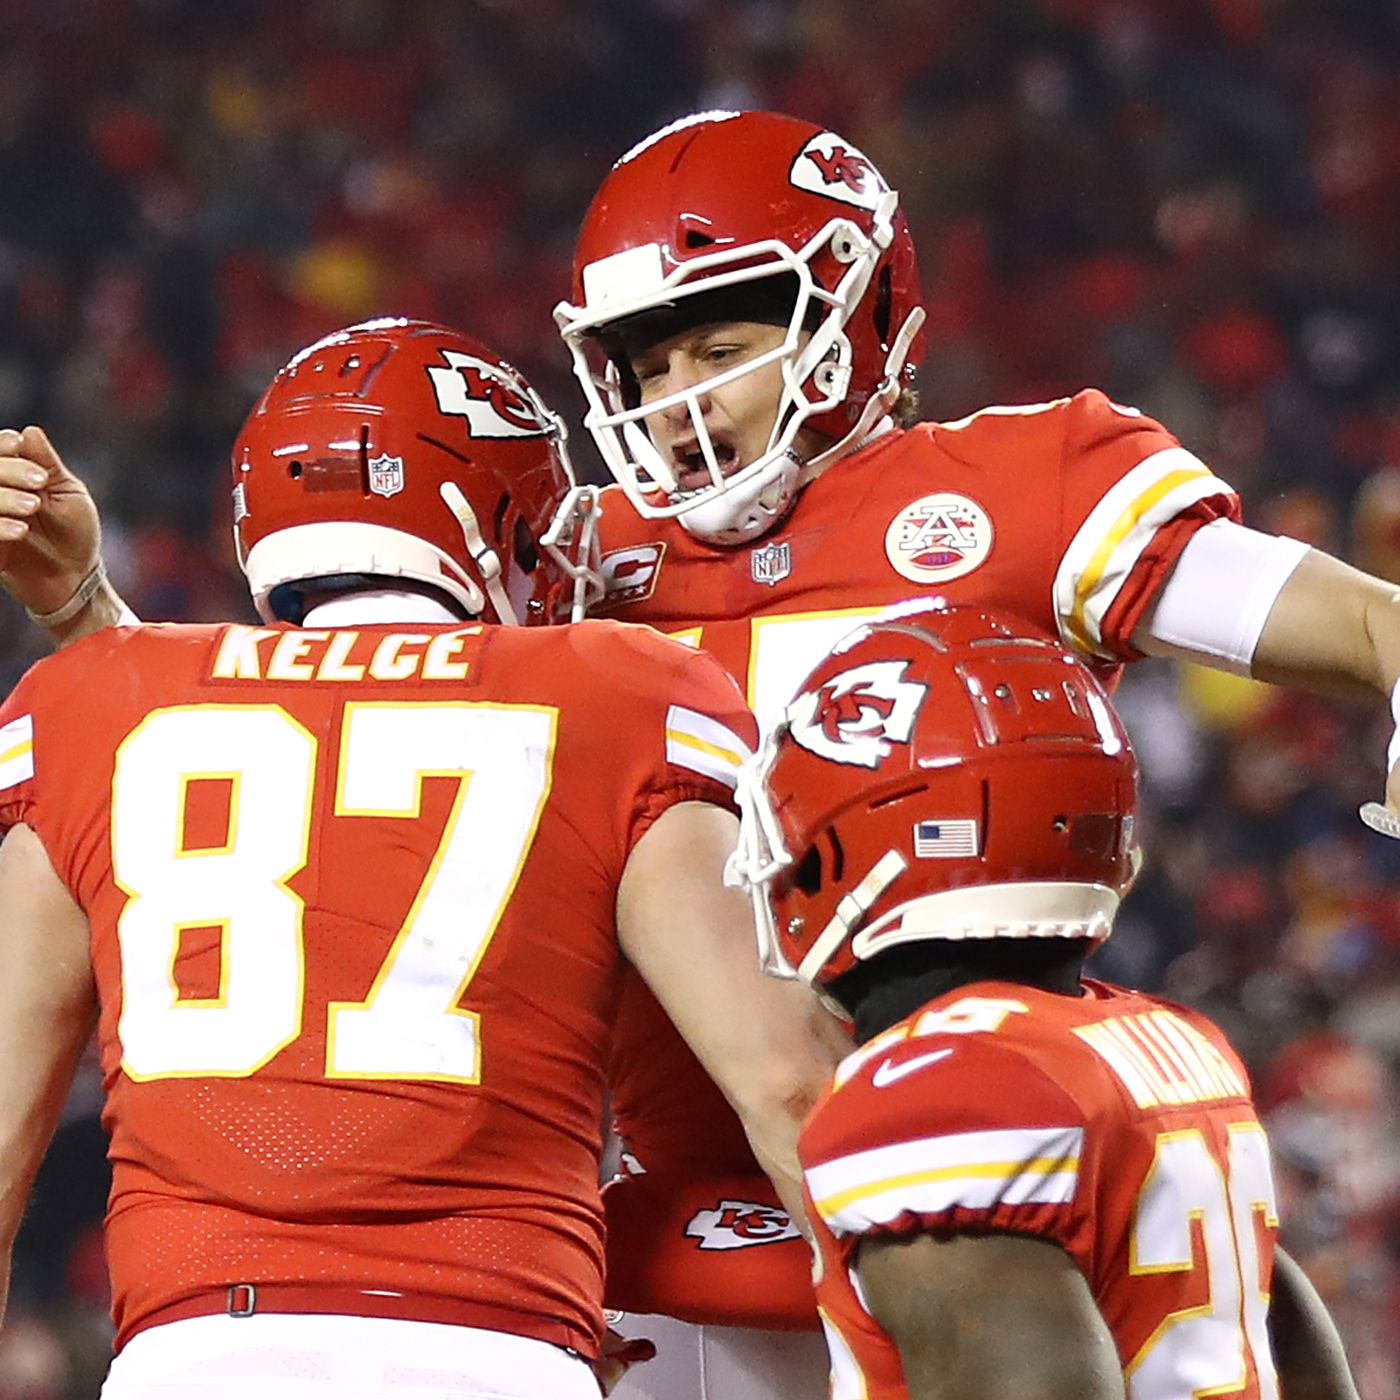 wholesale dealer 4d787 dcb1f Patrick Mahomes to play in Pro Bowl, Travis Kelce will not ...